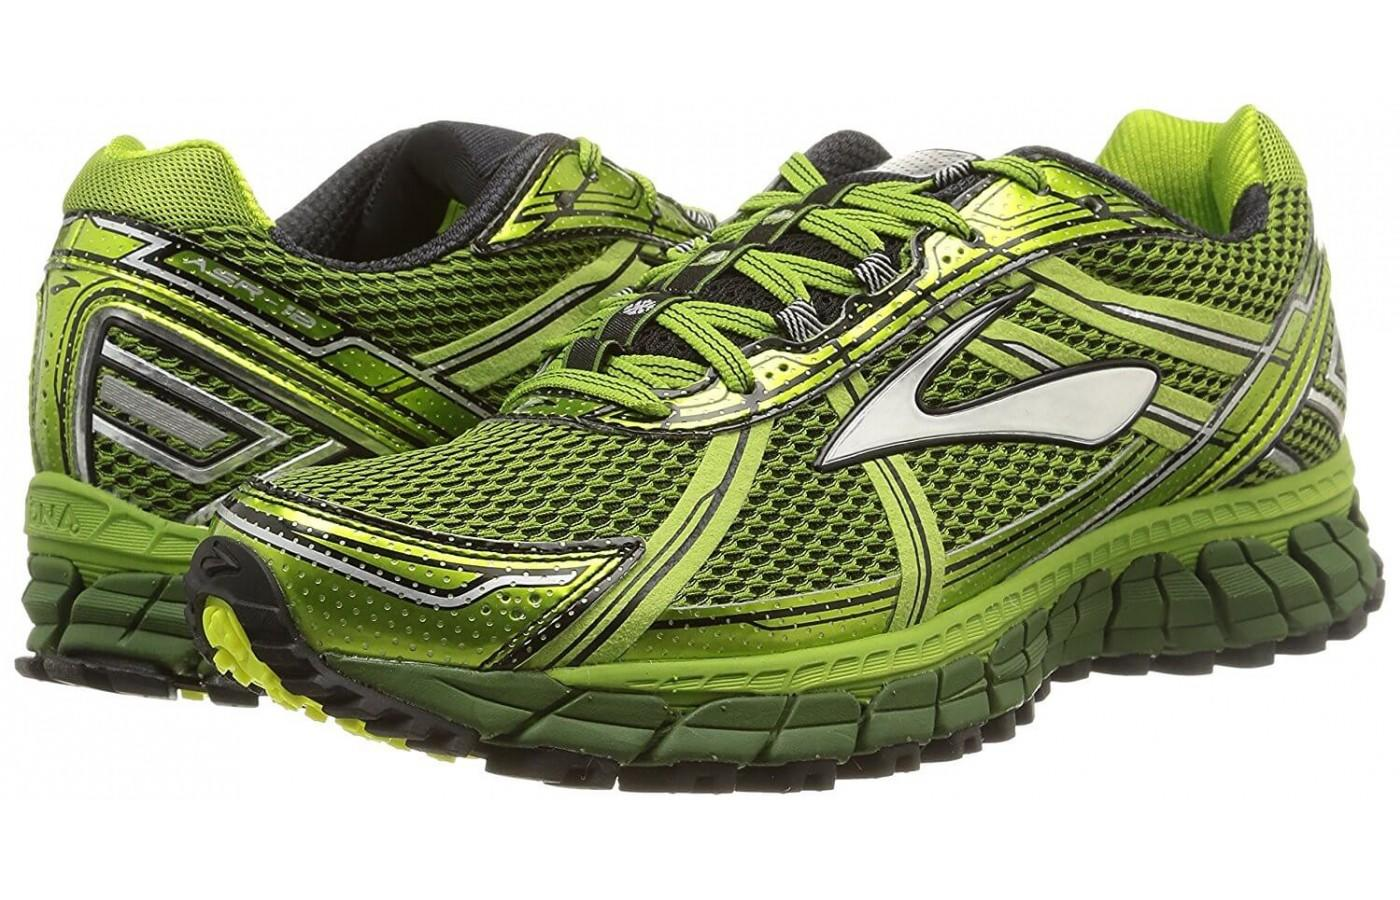 a pair of Brooks Adrenaline ASR 12 shoes